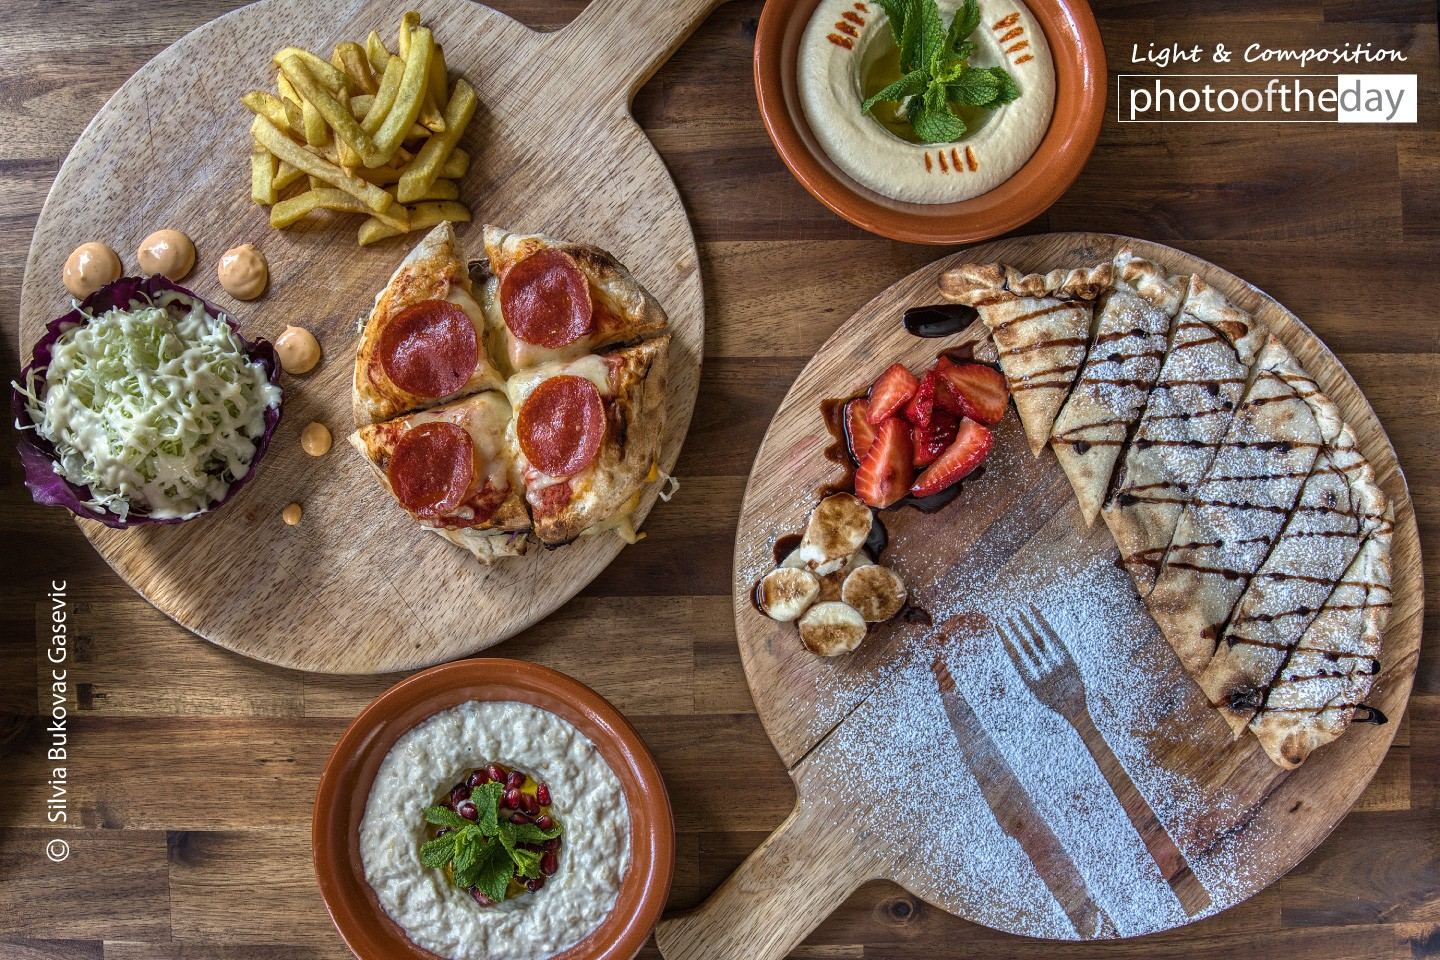 Can Your Resist Food by Silvia Bukovac Gasevic